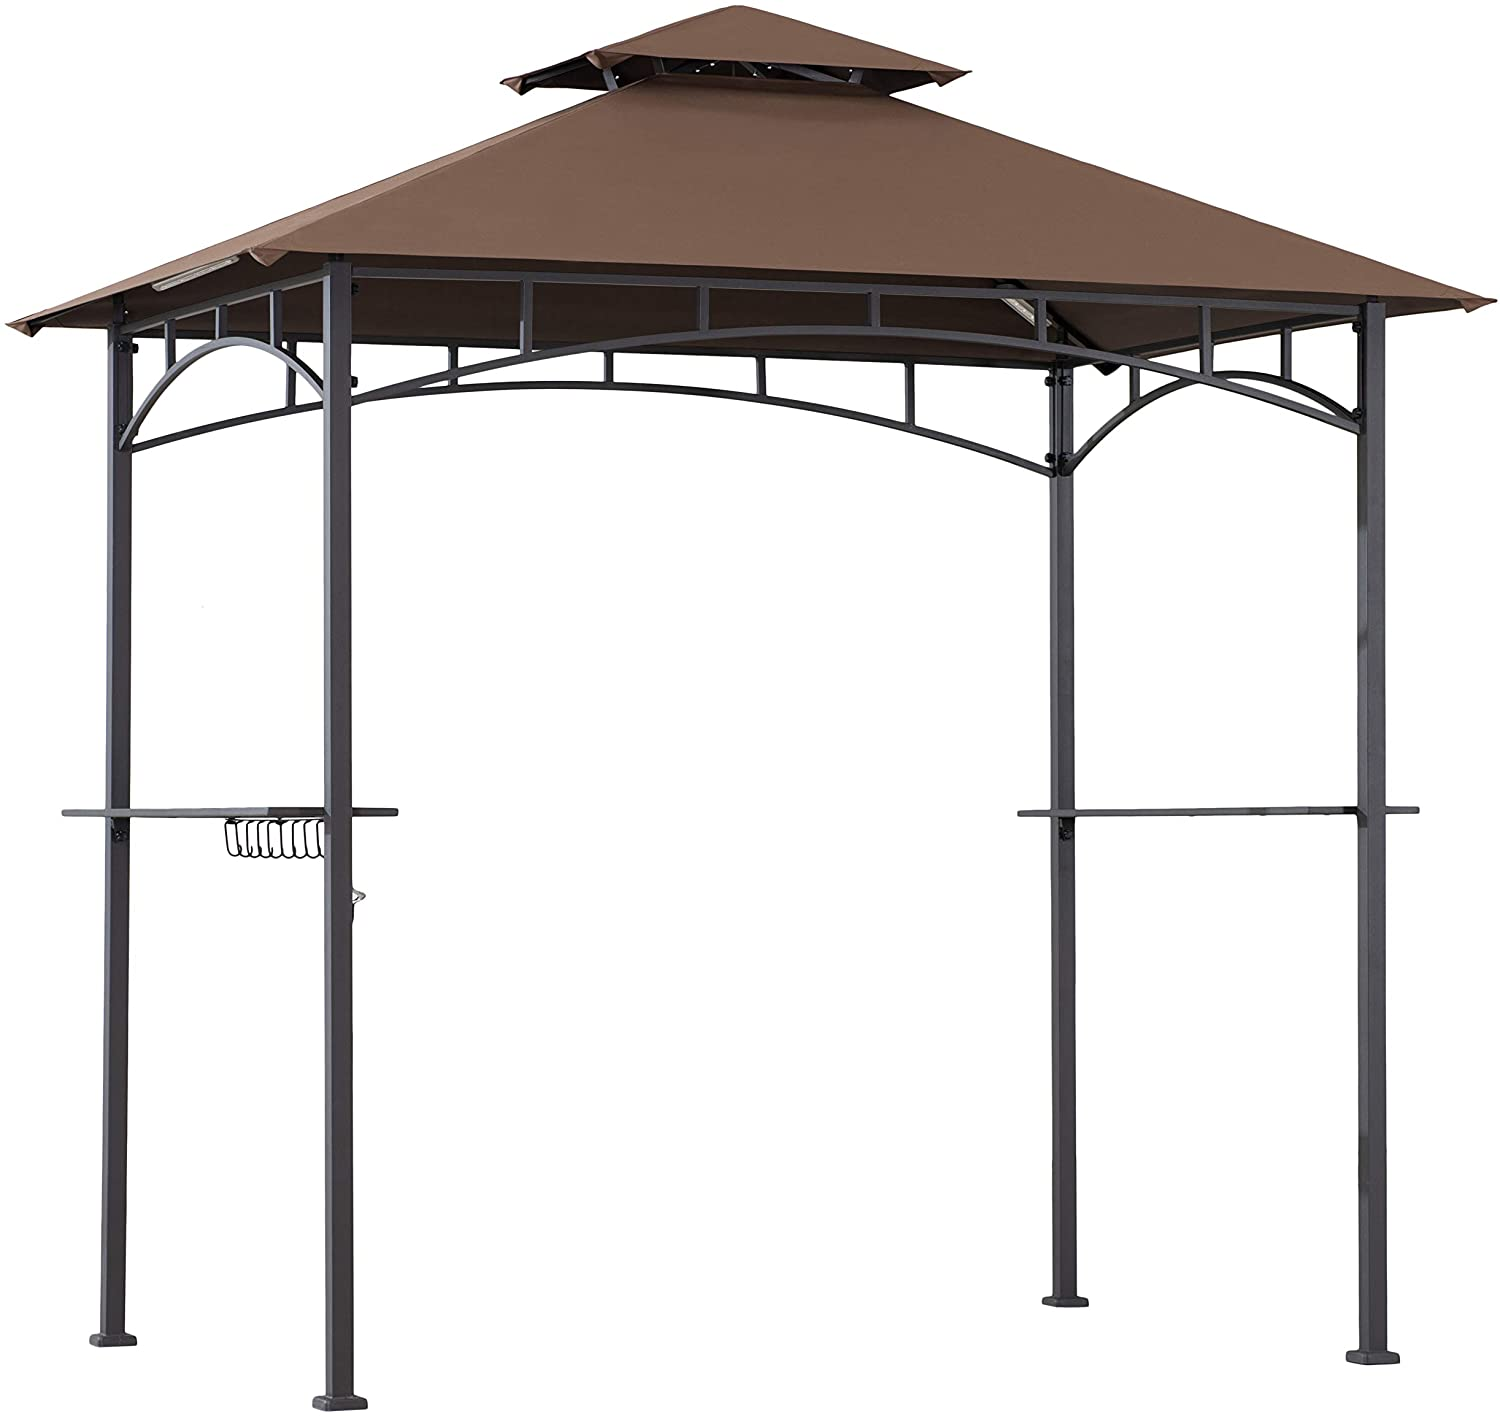 Easy-to-use Amazon Basics Outdoor Patio Grill Gazebo for LED Lights Bar Spring new work one after another with